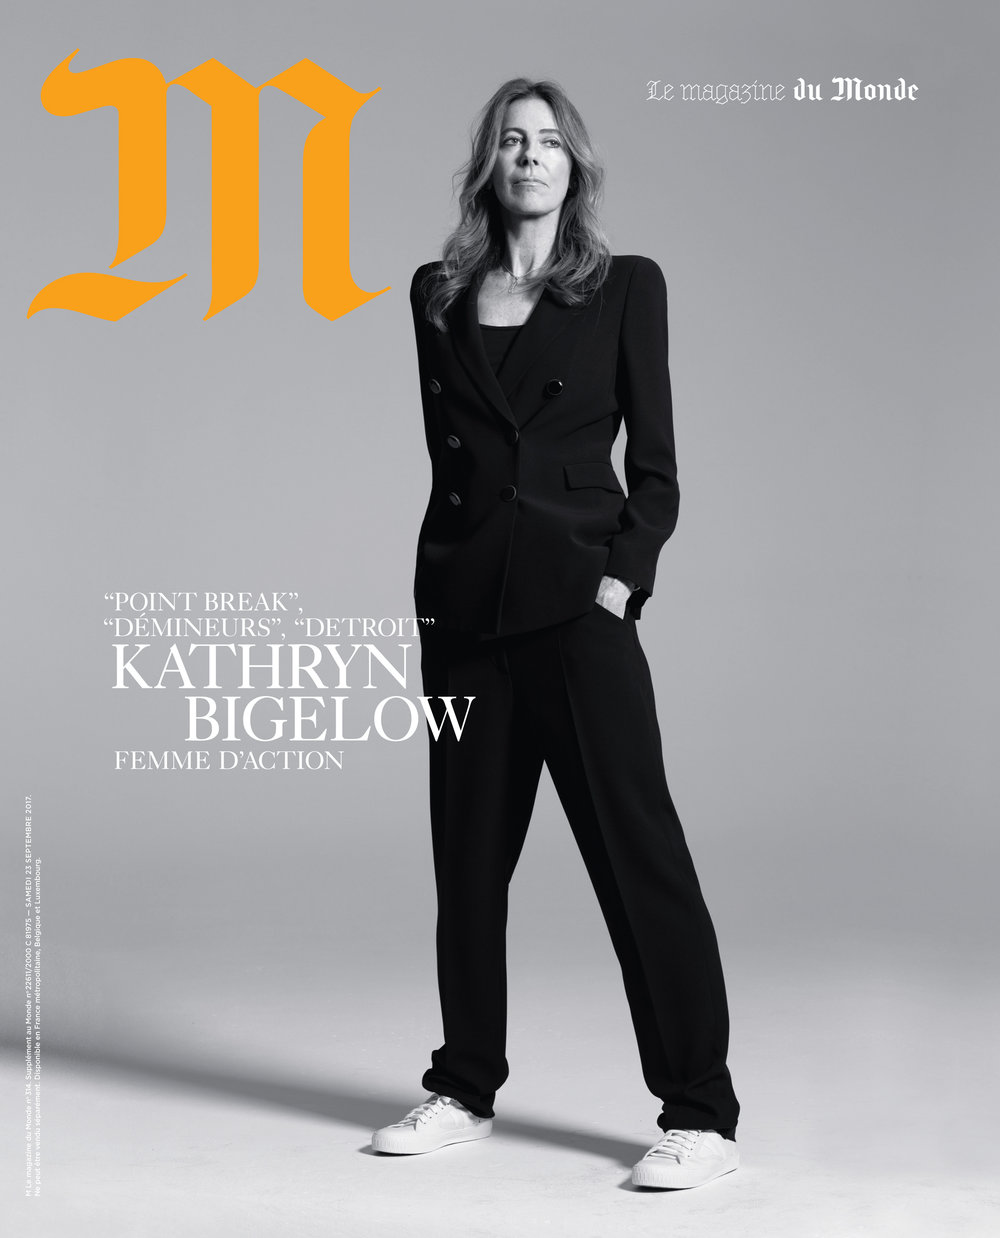 Kathryn Bigelow, New York